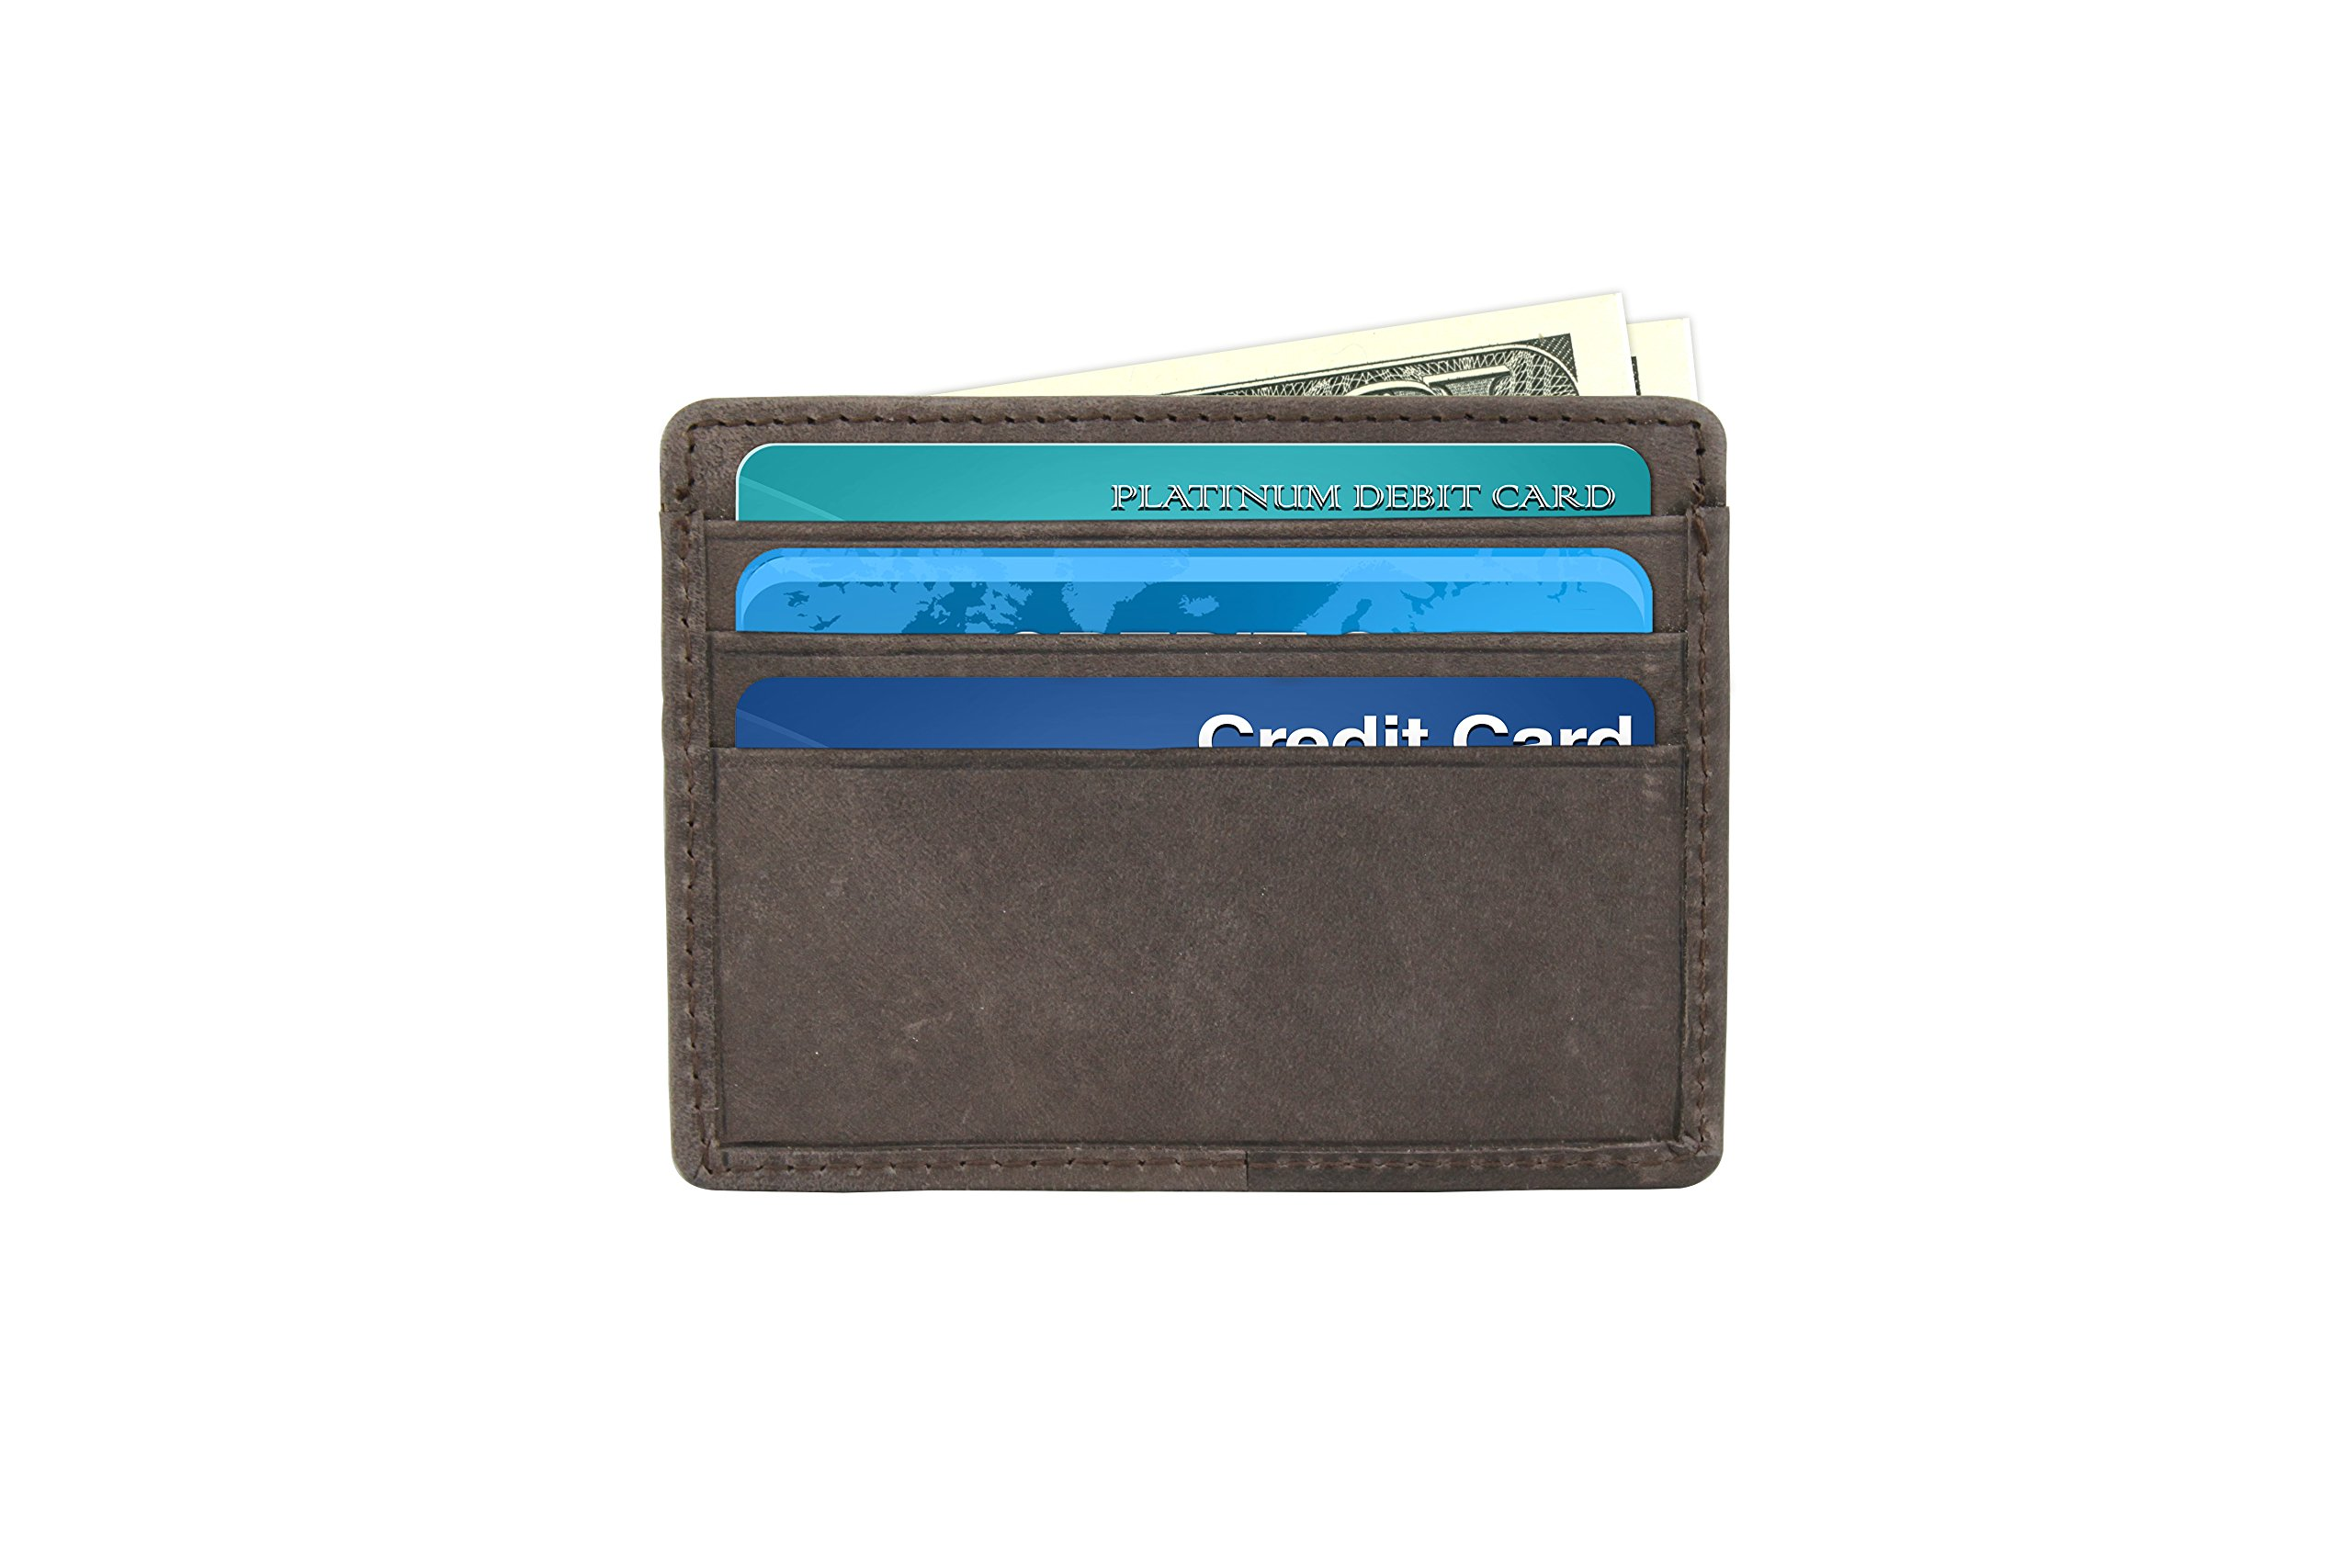 Slim Wallet for Men - Premium Leather - Ultra Thin